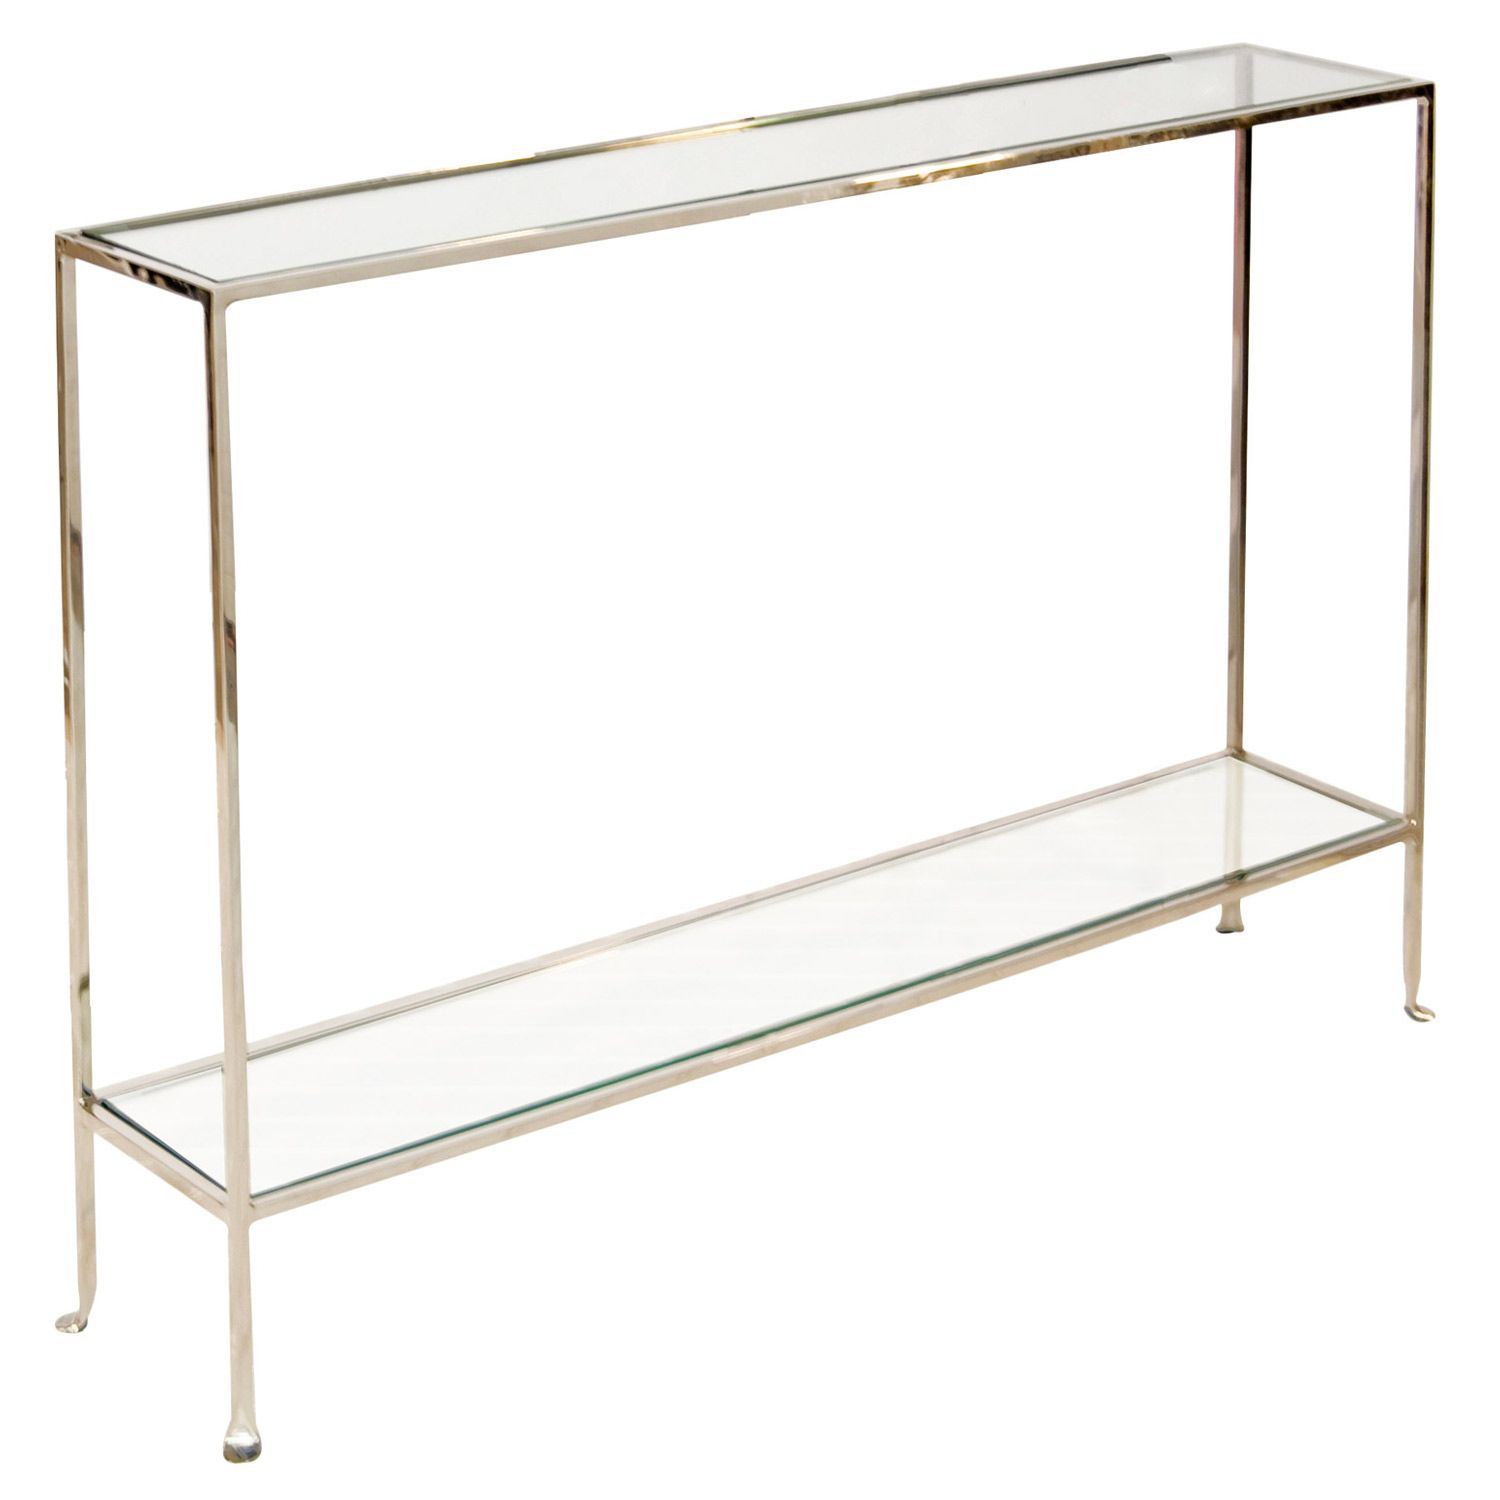 Worlds Away Woodard Skinny Nickel Console Wawoodardn3 Skinny Sideboard Very Narrow Console Table Worlds Away